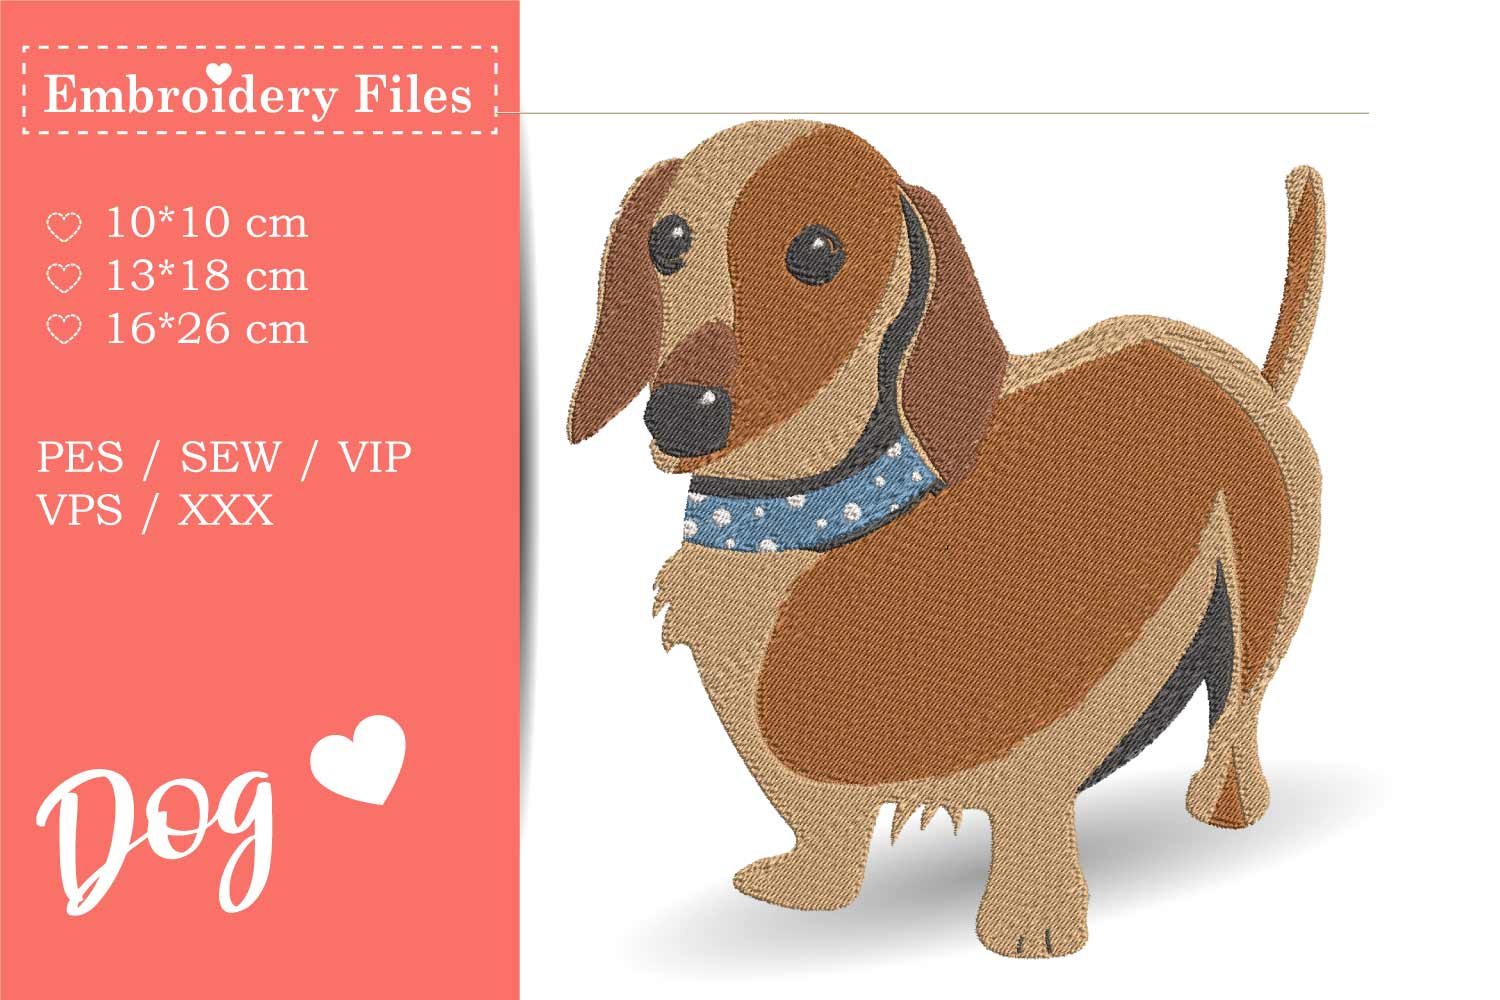 Cute Dachshund - Embroidery File for Beginners example image 1